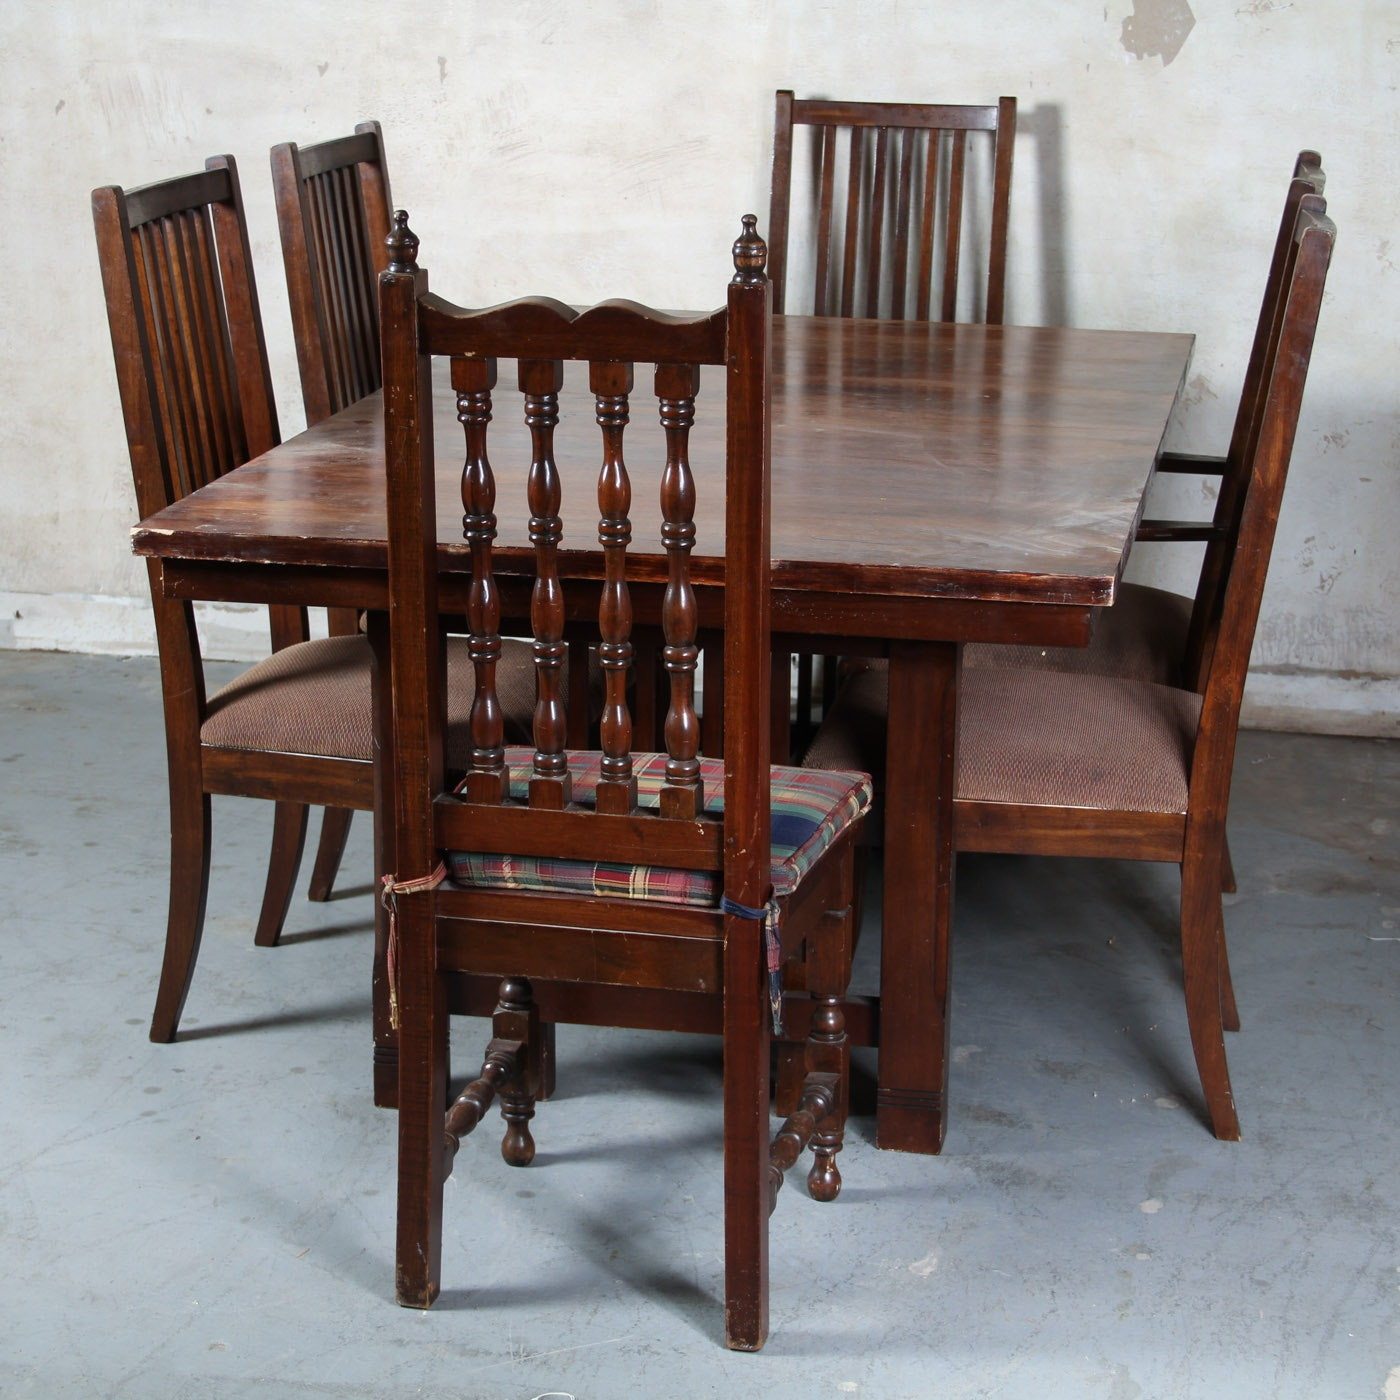 Mission Style Wooden Dining Table and Chairs